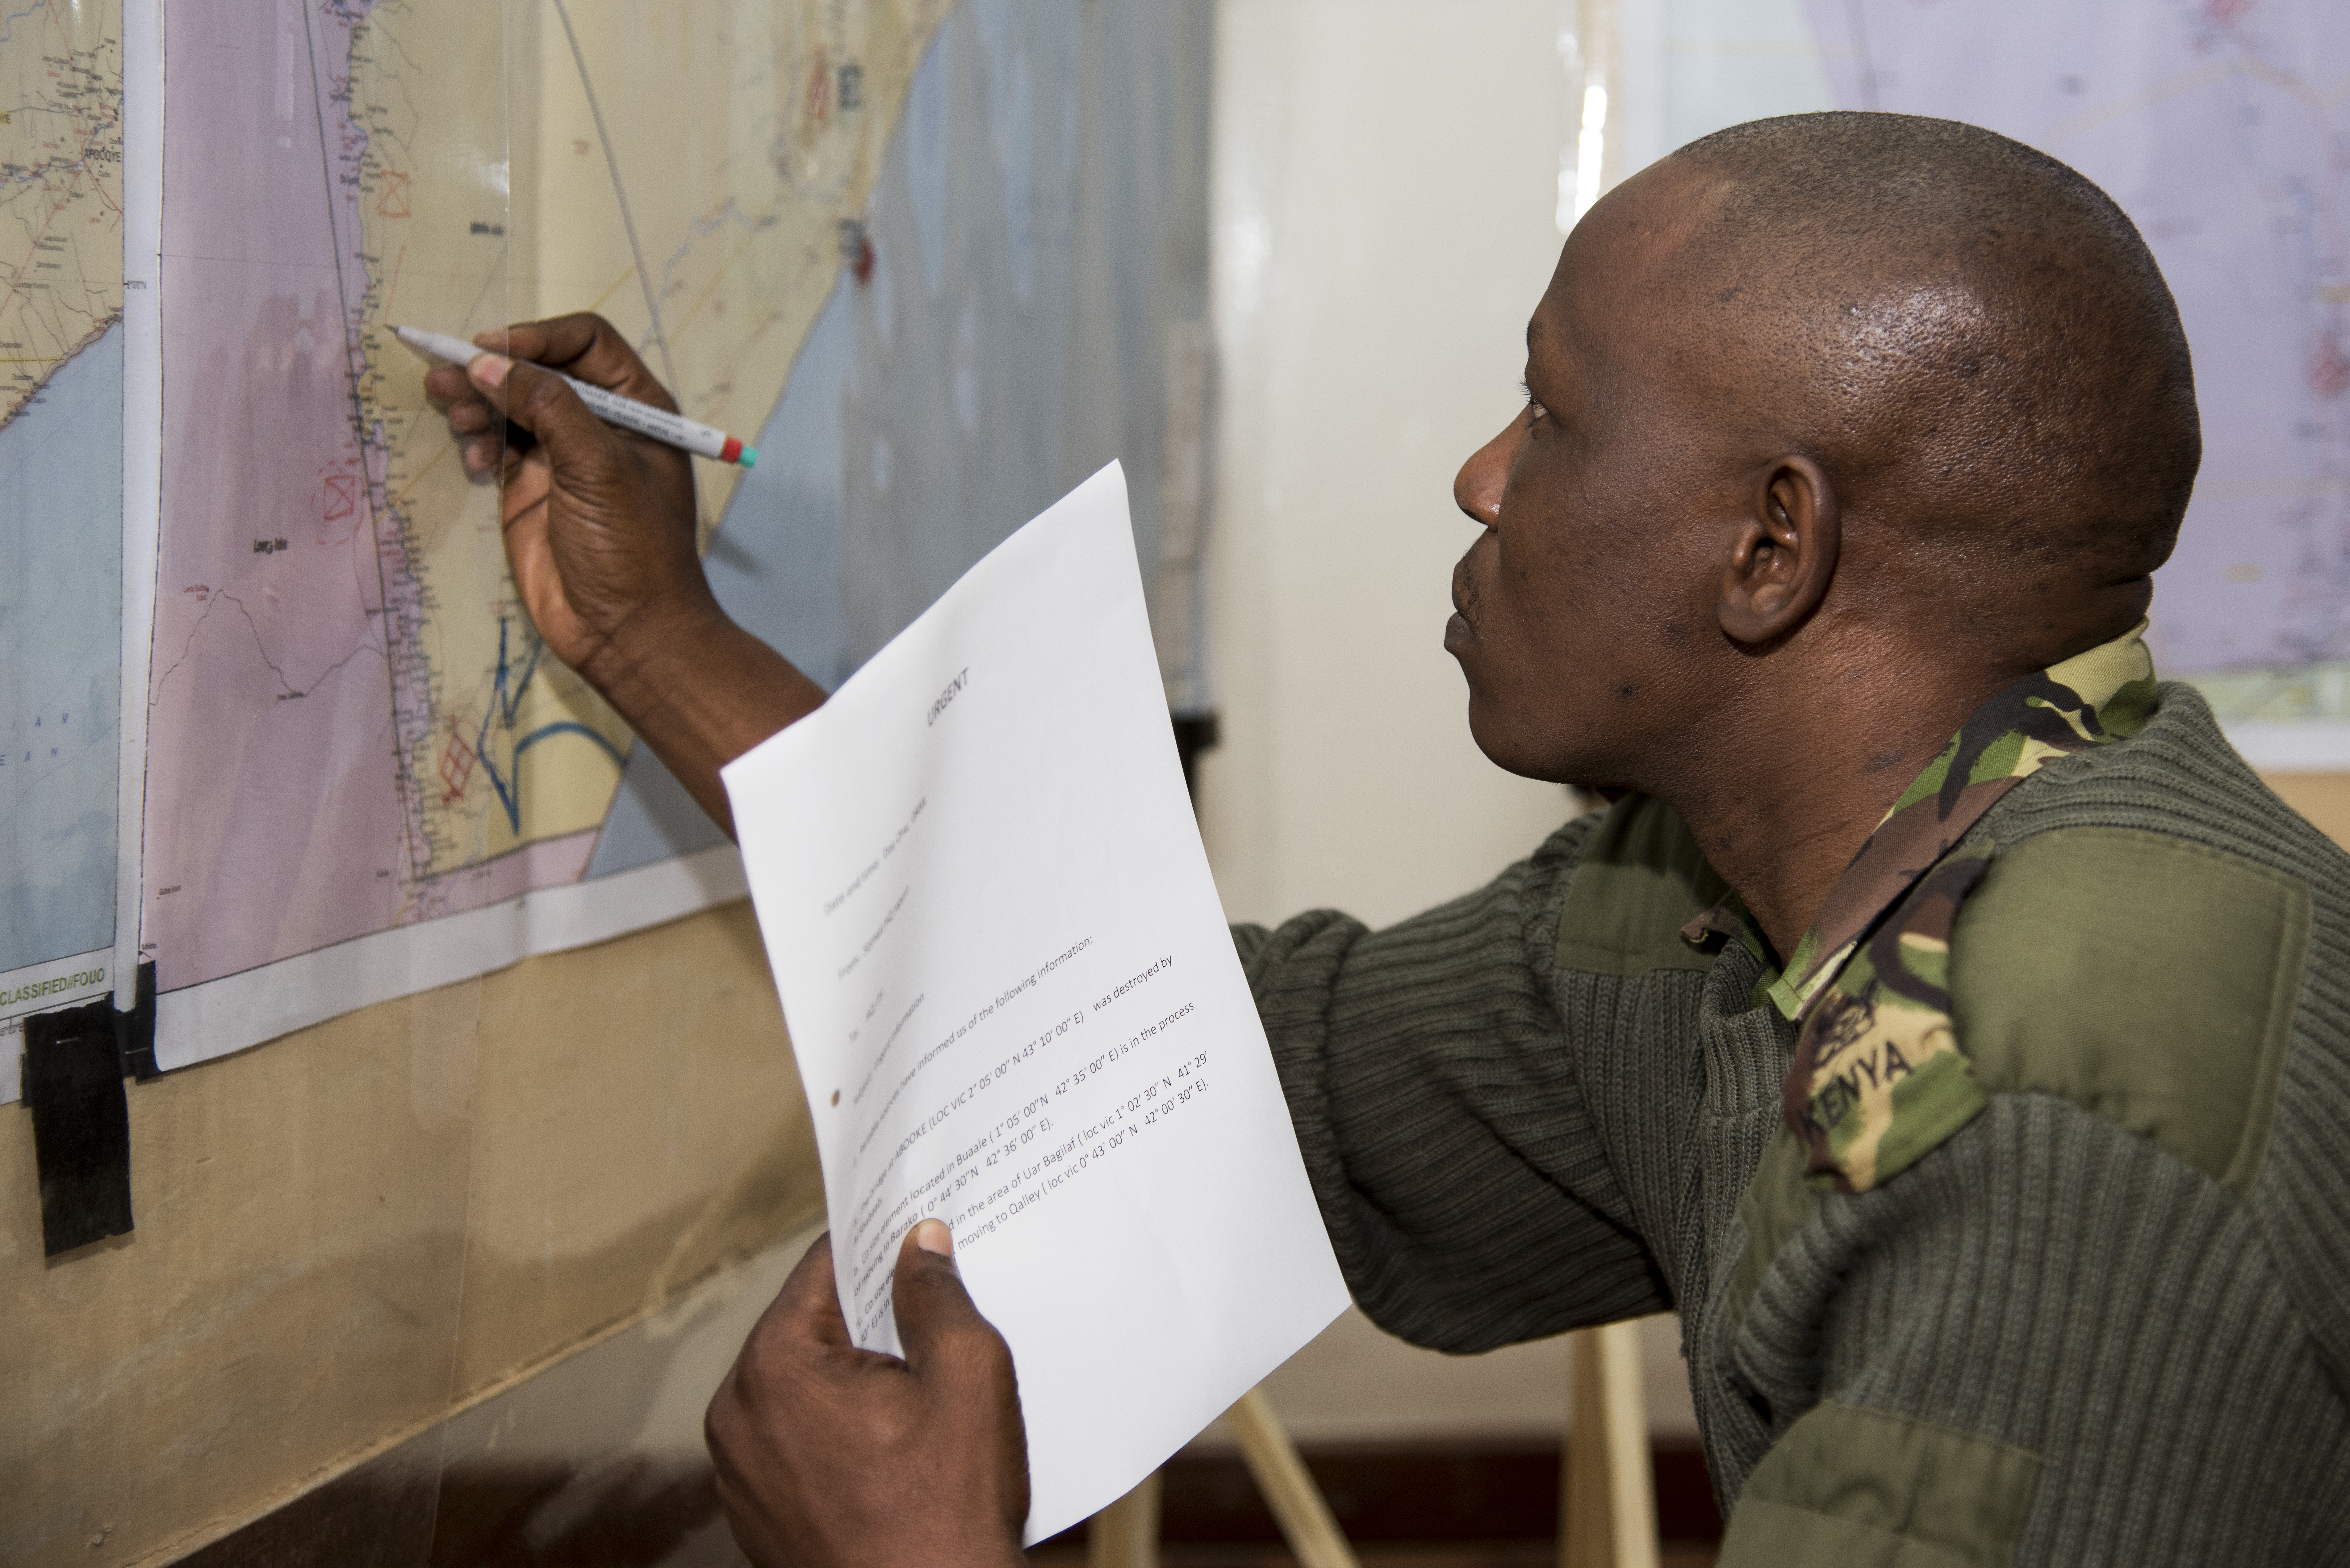 Kenyan Defense Force Maj. Balata Kotea, Africa Contingency Operations Training & Assistance (ACOTA) African Union Mission in Somalia (AMISOM) Force Headquarters training course attendee, updates a map of Somalia with the latest AMISOM and Al-Shabaab troop movements at the International Peace Support Training Center in Nairobi, Kenya, Aug. 25, 2015. Kenya is one of the AU countries contributing to the forces in Somalia battling Al-Shabaab and the ACOTA course helps familiarize the attending officers with the military decision making process, so they can better advise and prepare solutions to the problems they might face in the field. (U.S. Air Force photo by Staff Sgt. Nathan Maysonet/released)